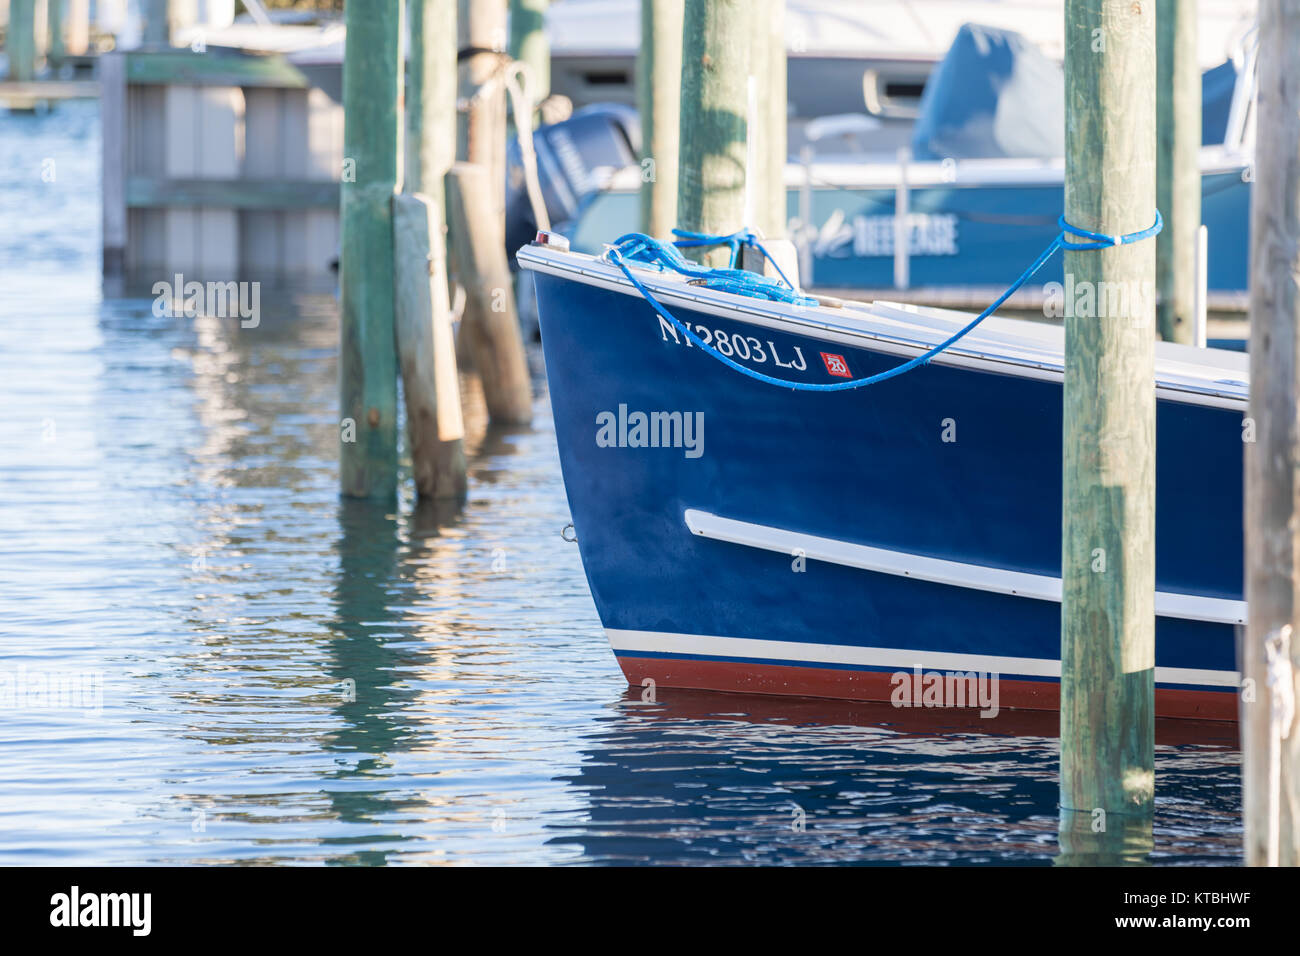 detail image of the hull of a small boat in sag harbor, ny - Stock Image